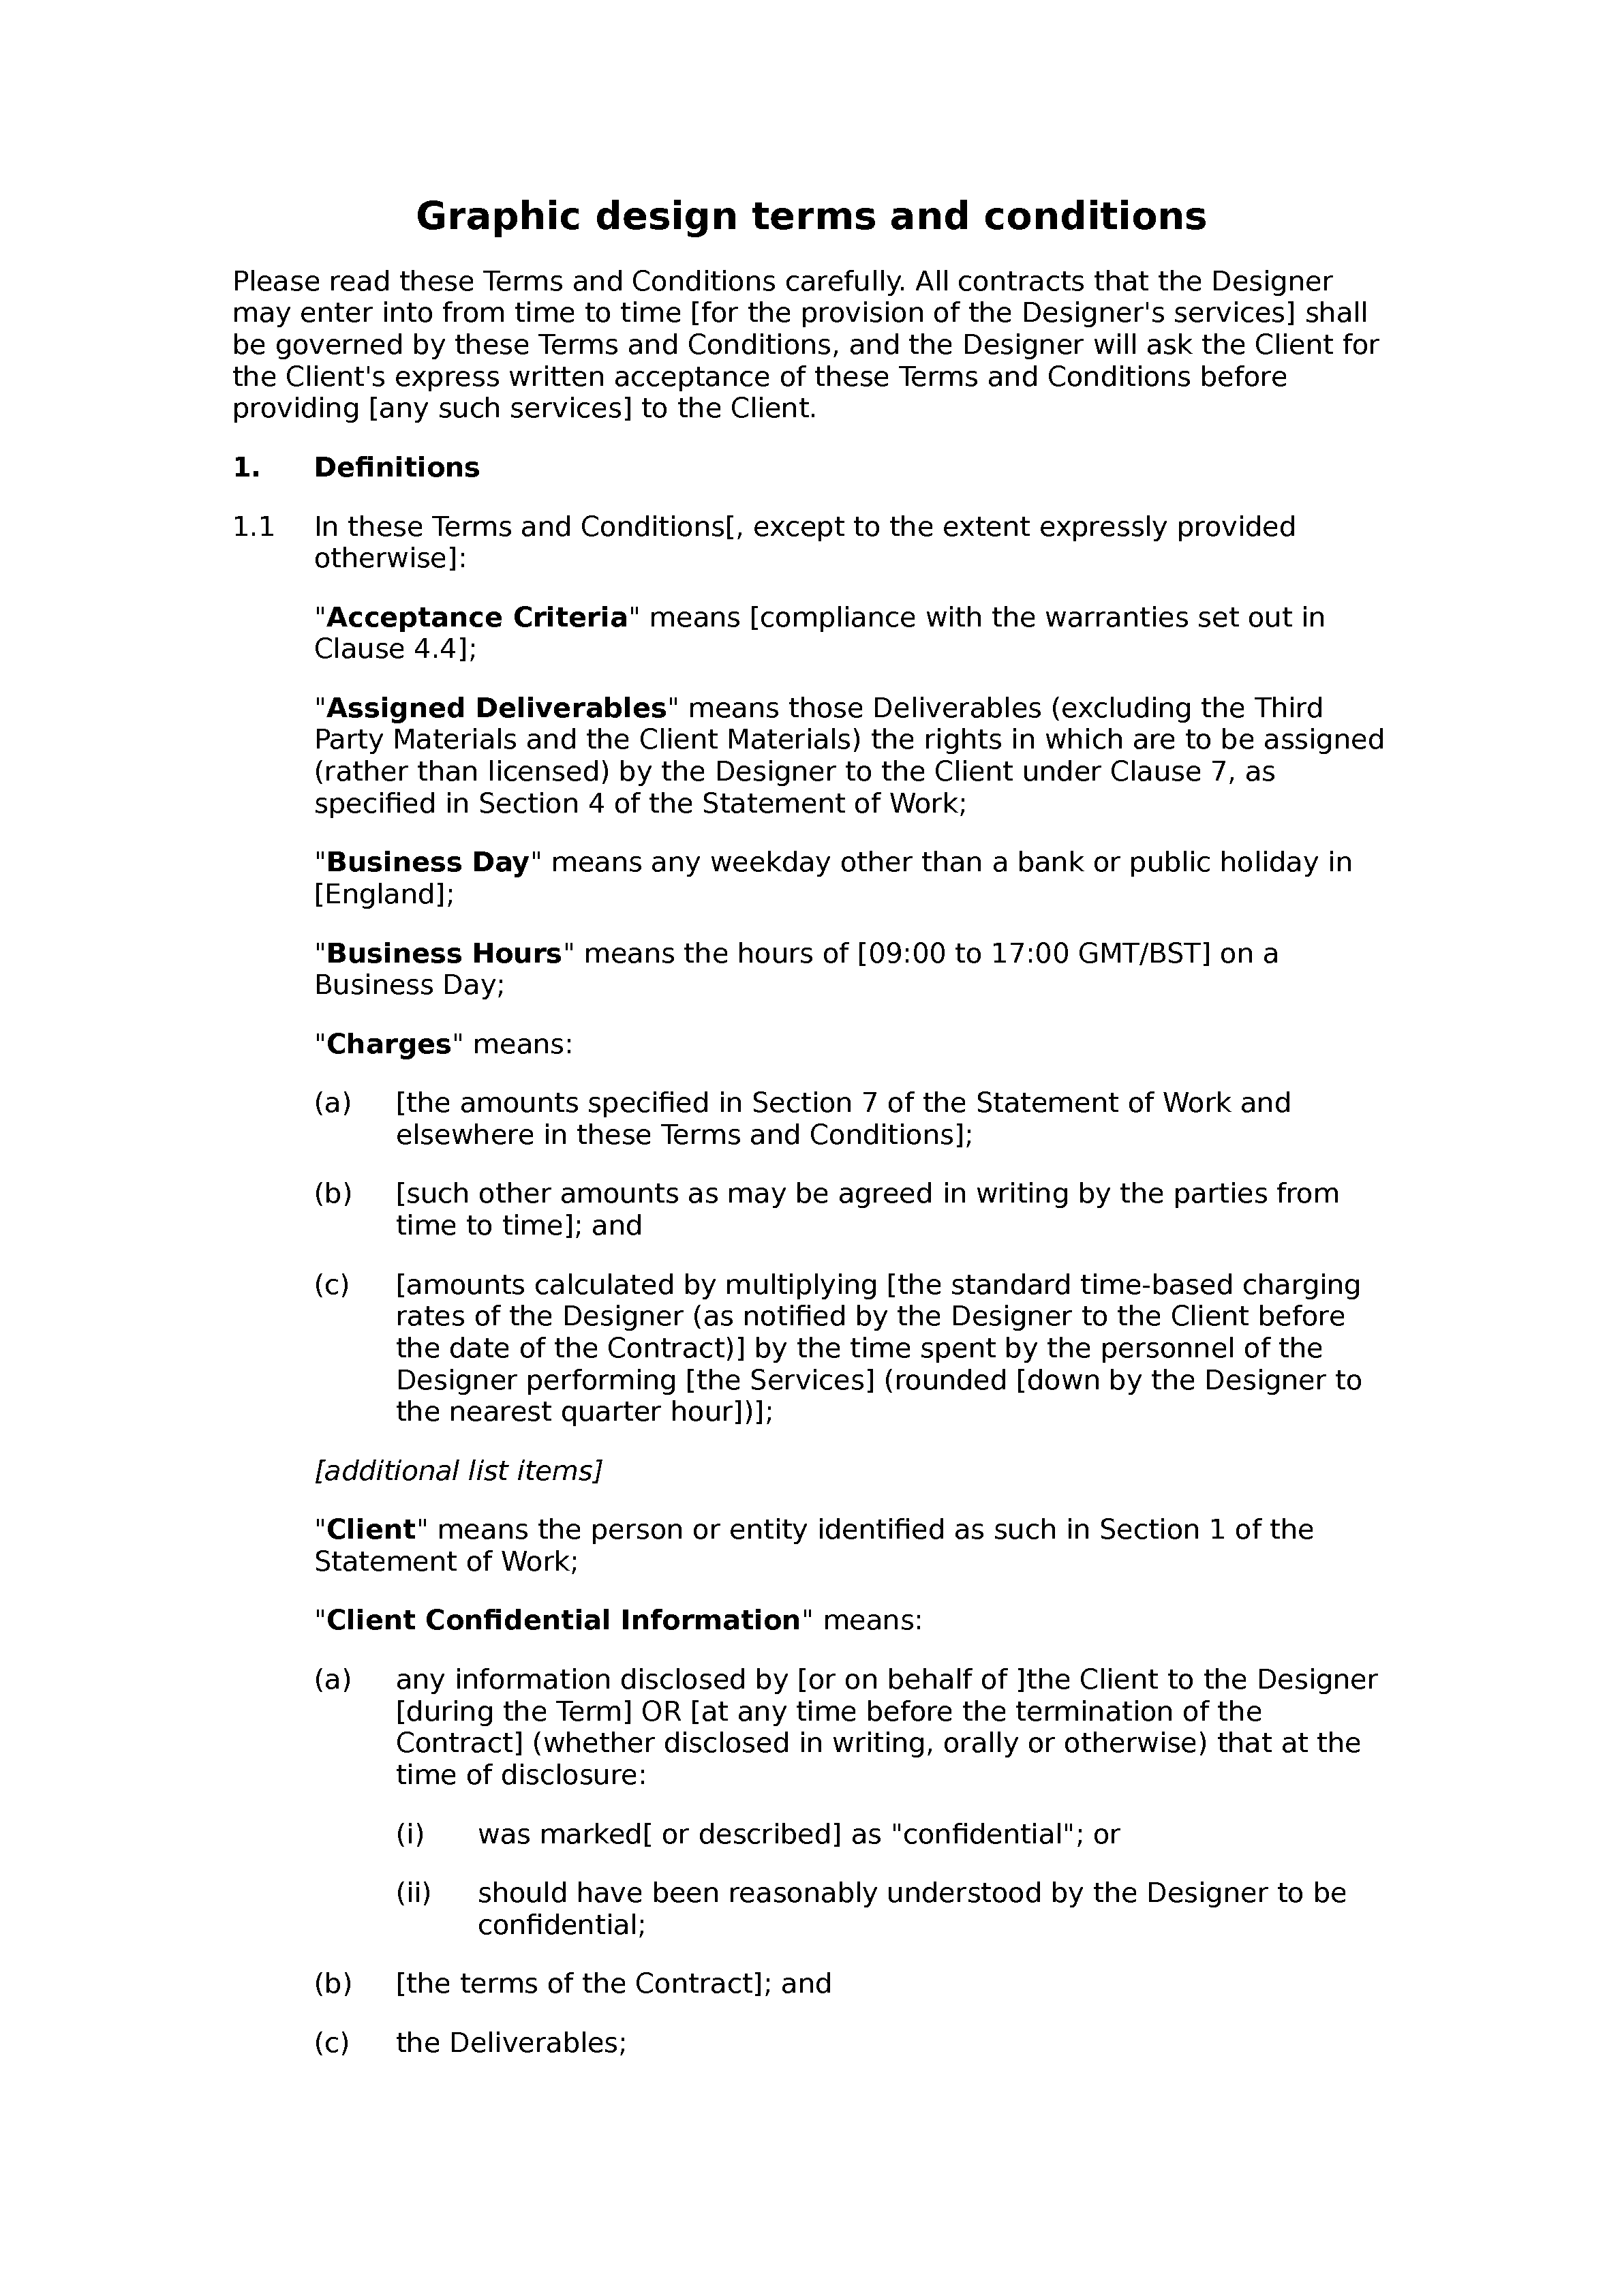 Graphic design terms and conditions document preview